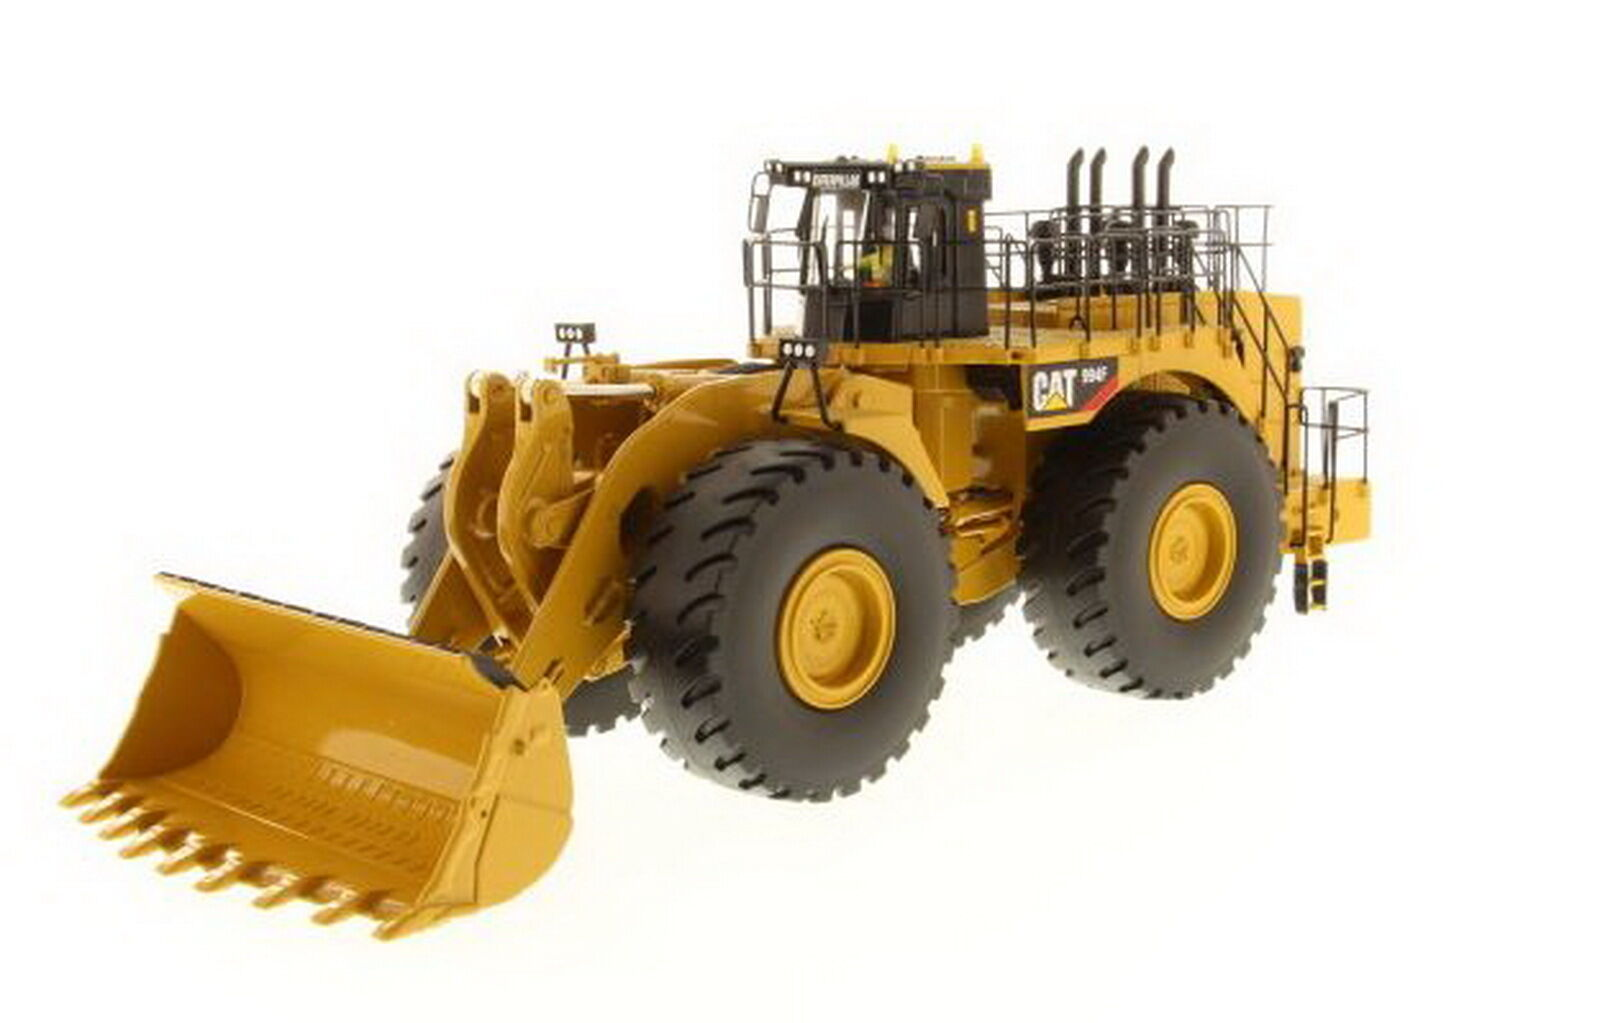 1 50 DM Caterpillar Cat 994 F Wheel Loader Diecast Model  85161